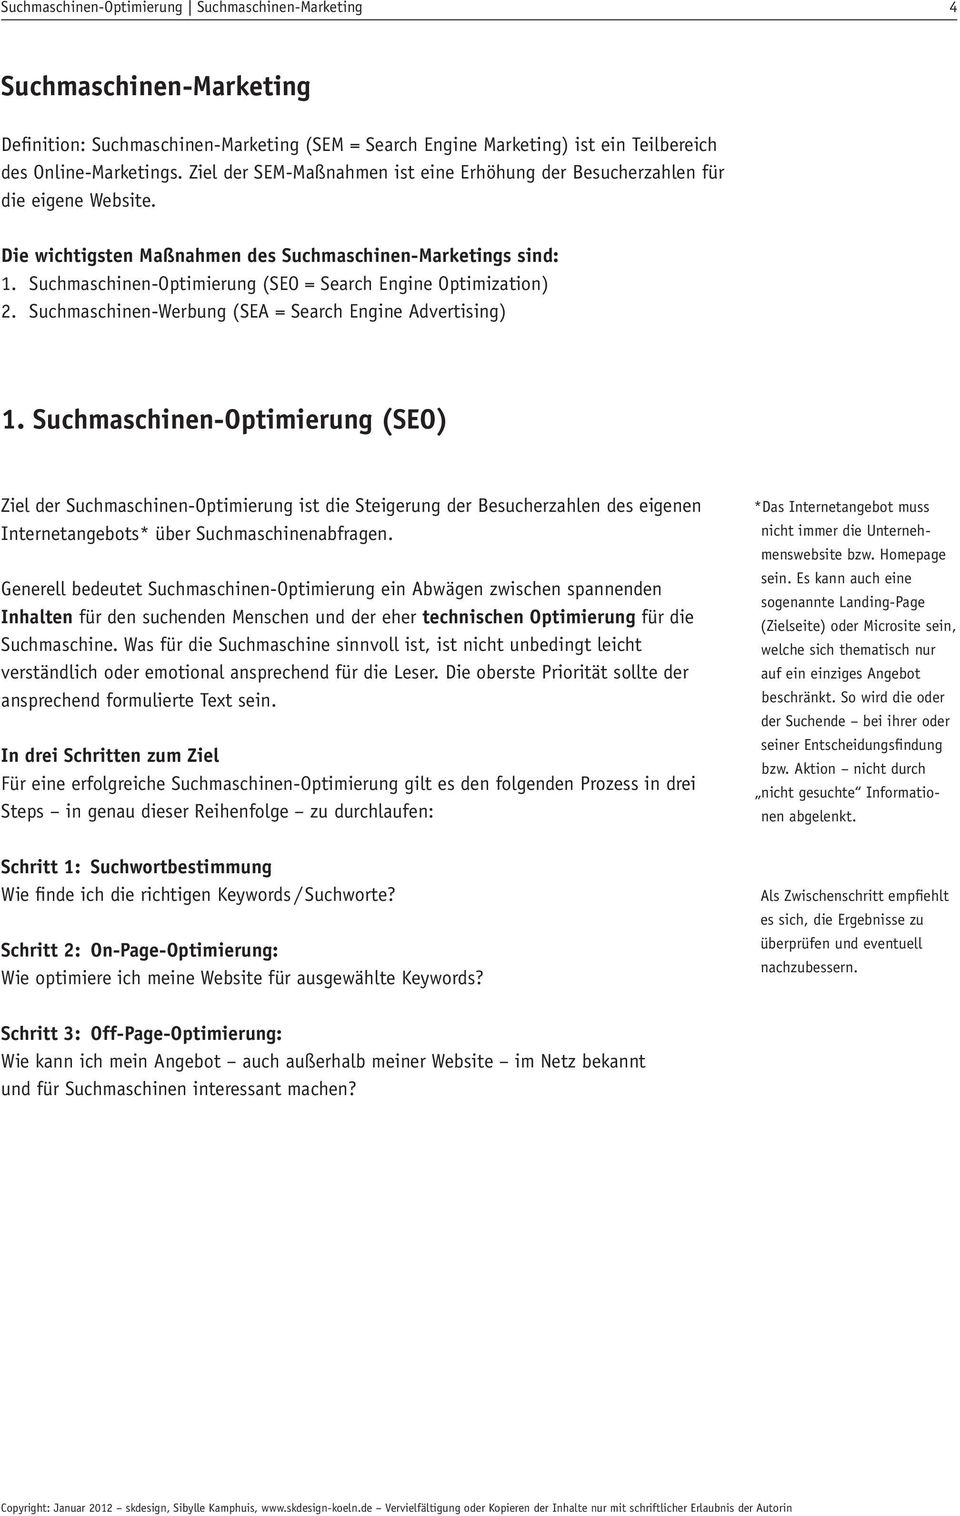 Suchmaschinen-Optimierung (SEO = Search Engine Optimization) 2. Suchmaschinen-Werbung (SEA = Search Engine Advertising) 1.